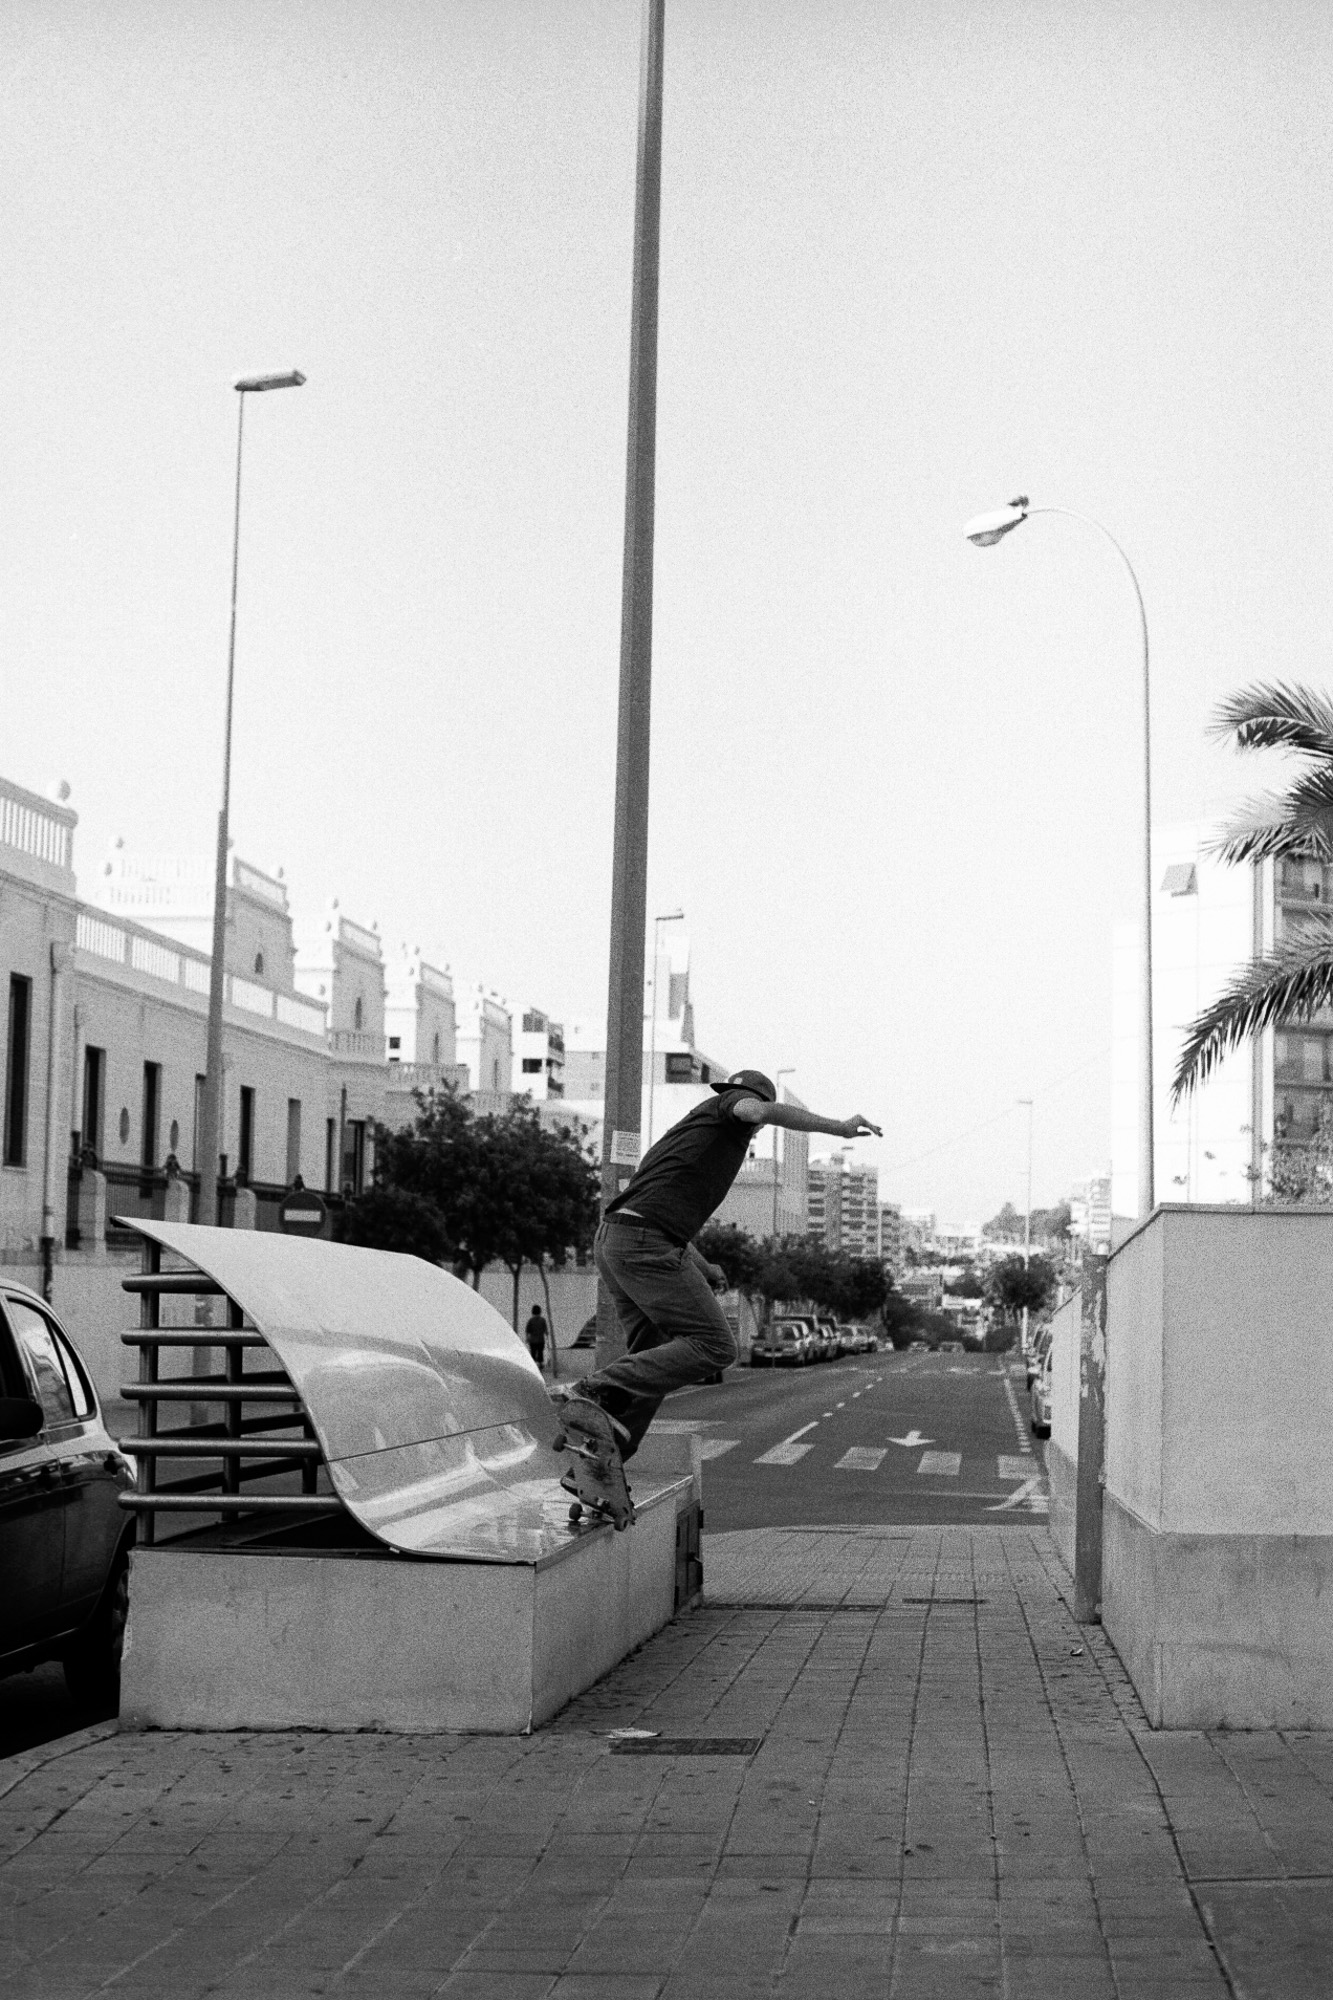 george-skateboarding-alicante-2.jpg